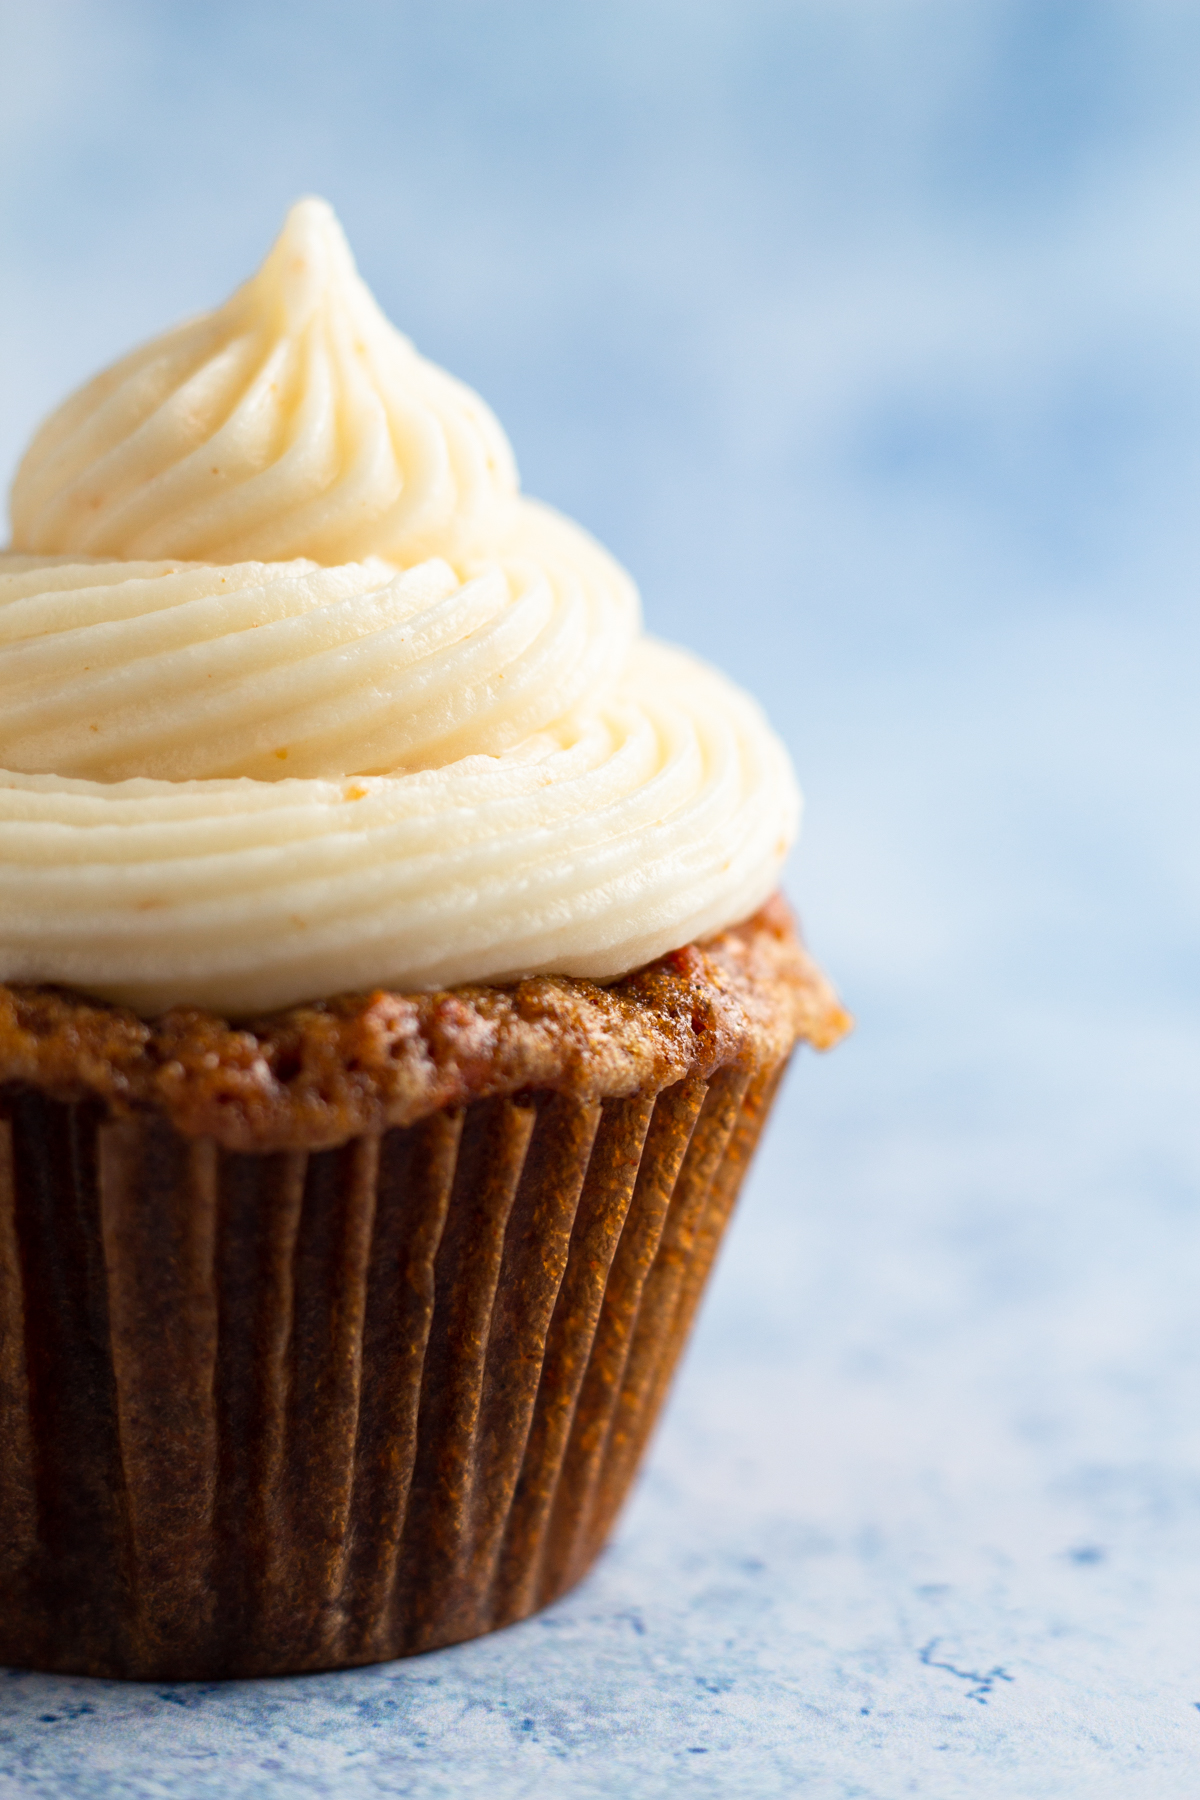 close up side view of a carrot cake cupcake topped with a swirl of cream cheese frosting